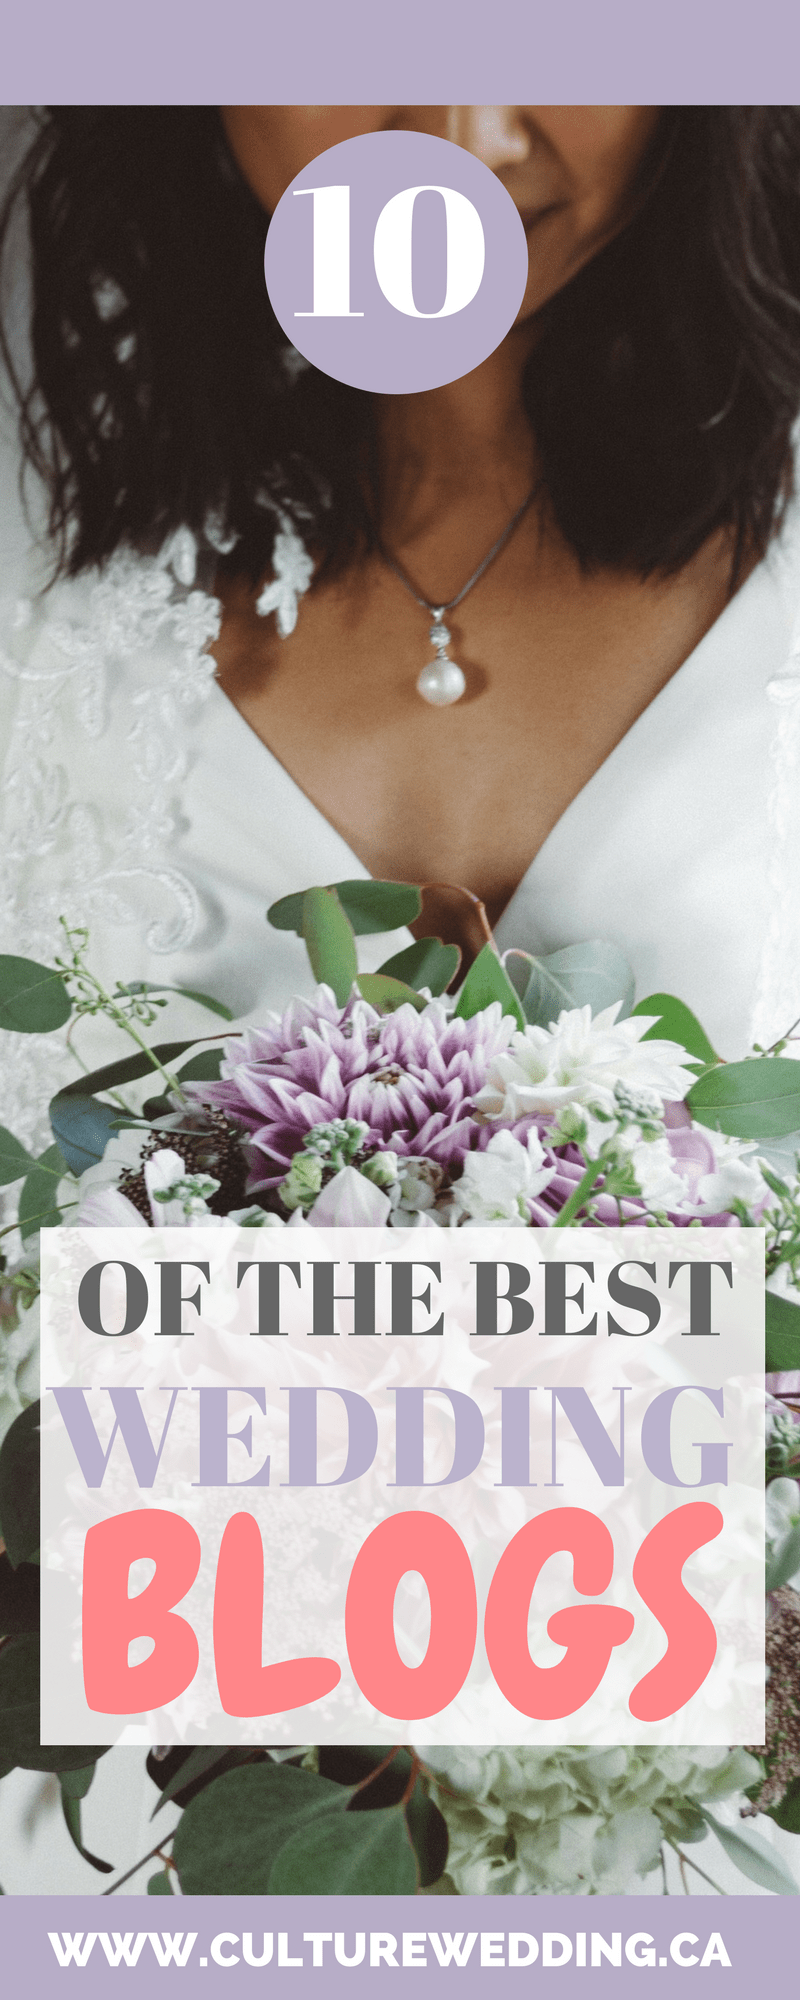 The top 10 wedding blogs to help plan your wedding 10 of the best wedding blogs junglespirit Image collections